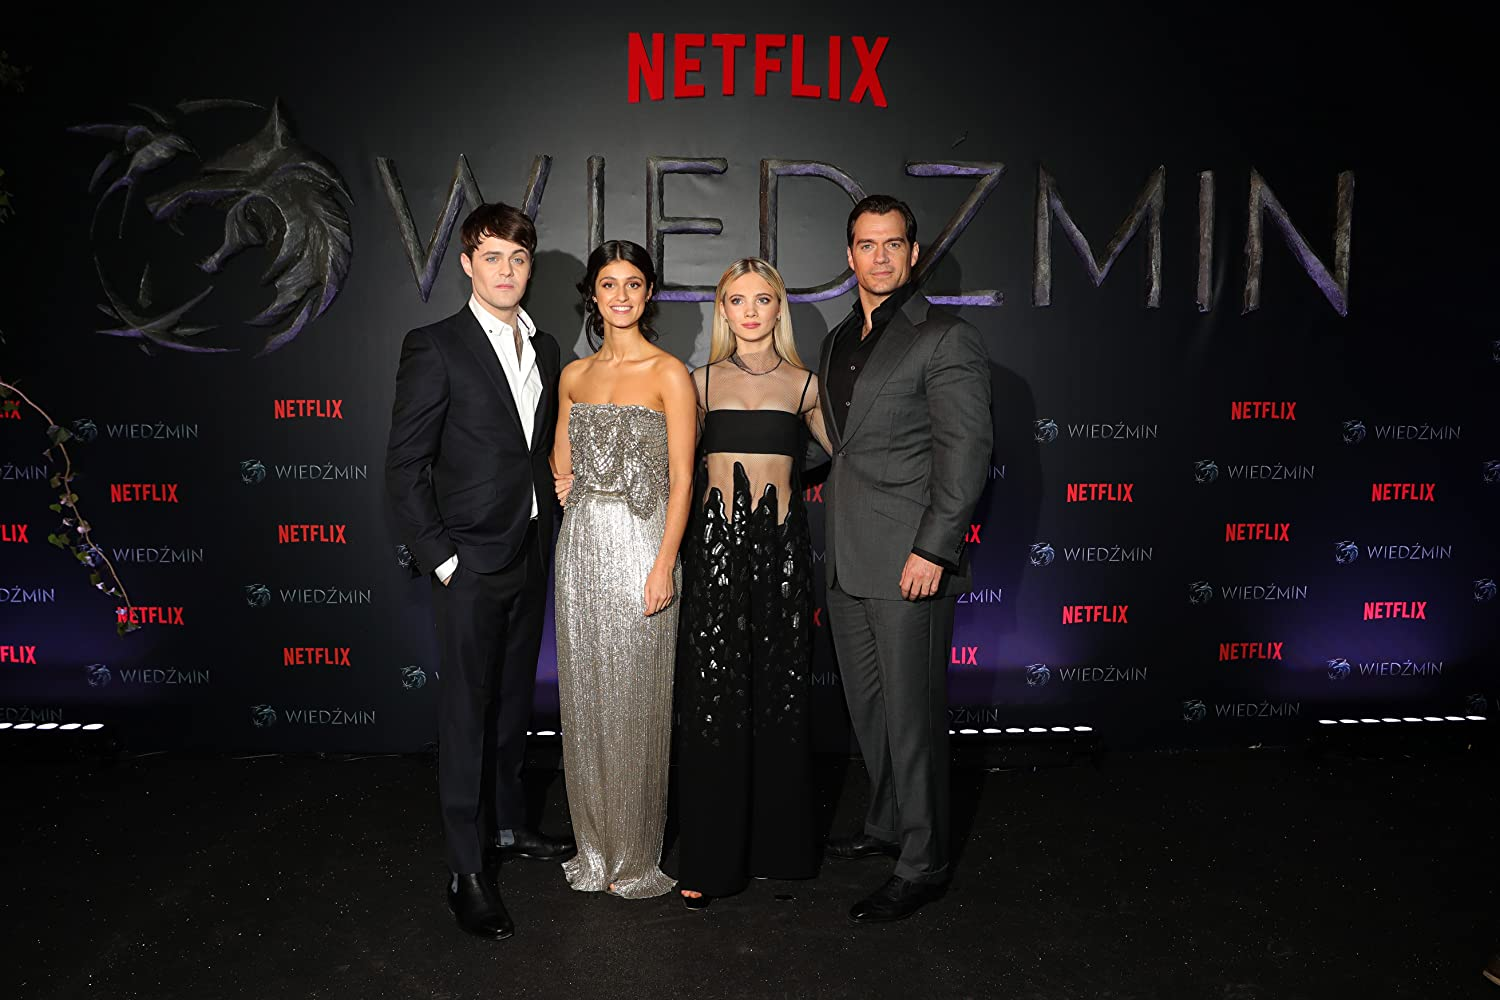 Henry Cavill, Joey Batey, Freya Allan, and Anya Chalotra at an event for The Witcher (2019)